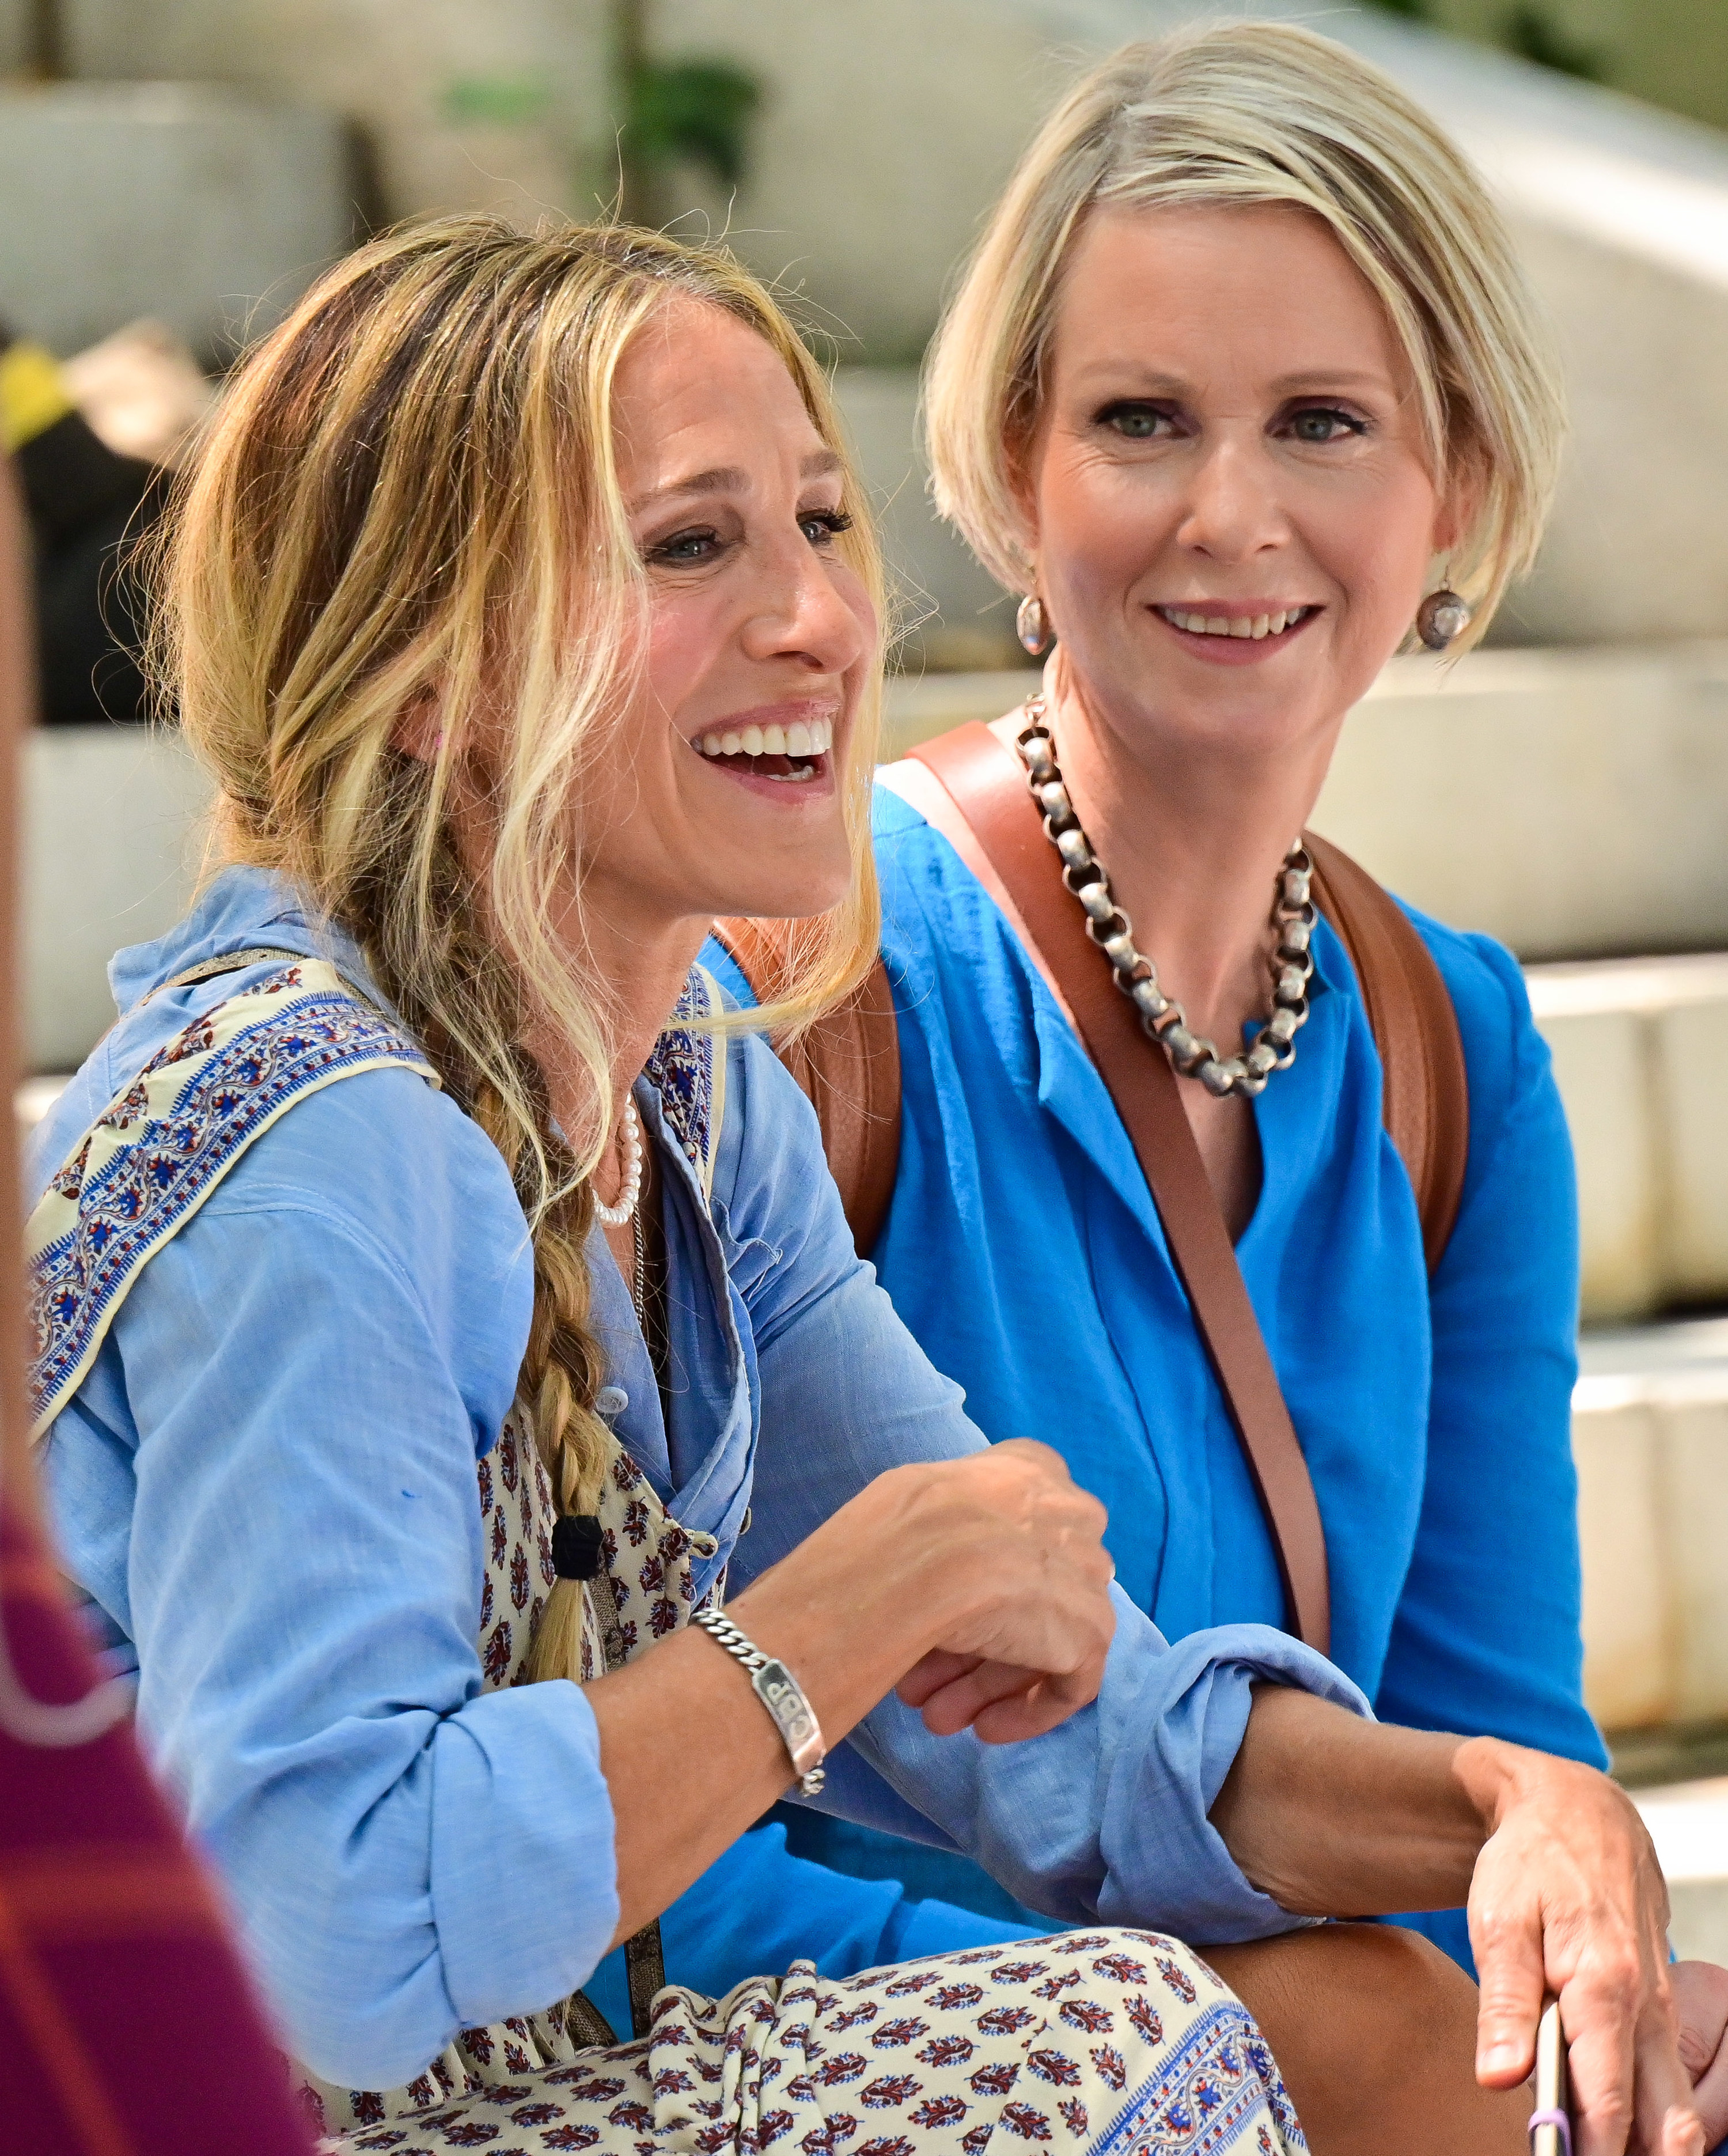 Sarah Jessica Parker and Cynthia Nixon are photographed sitting on the set of And Just Like That...